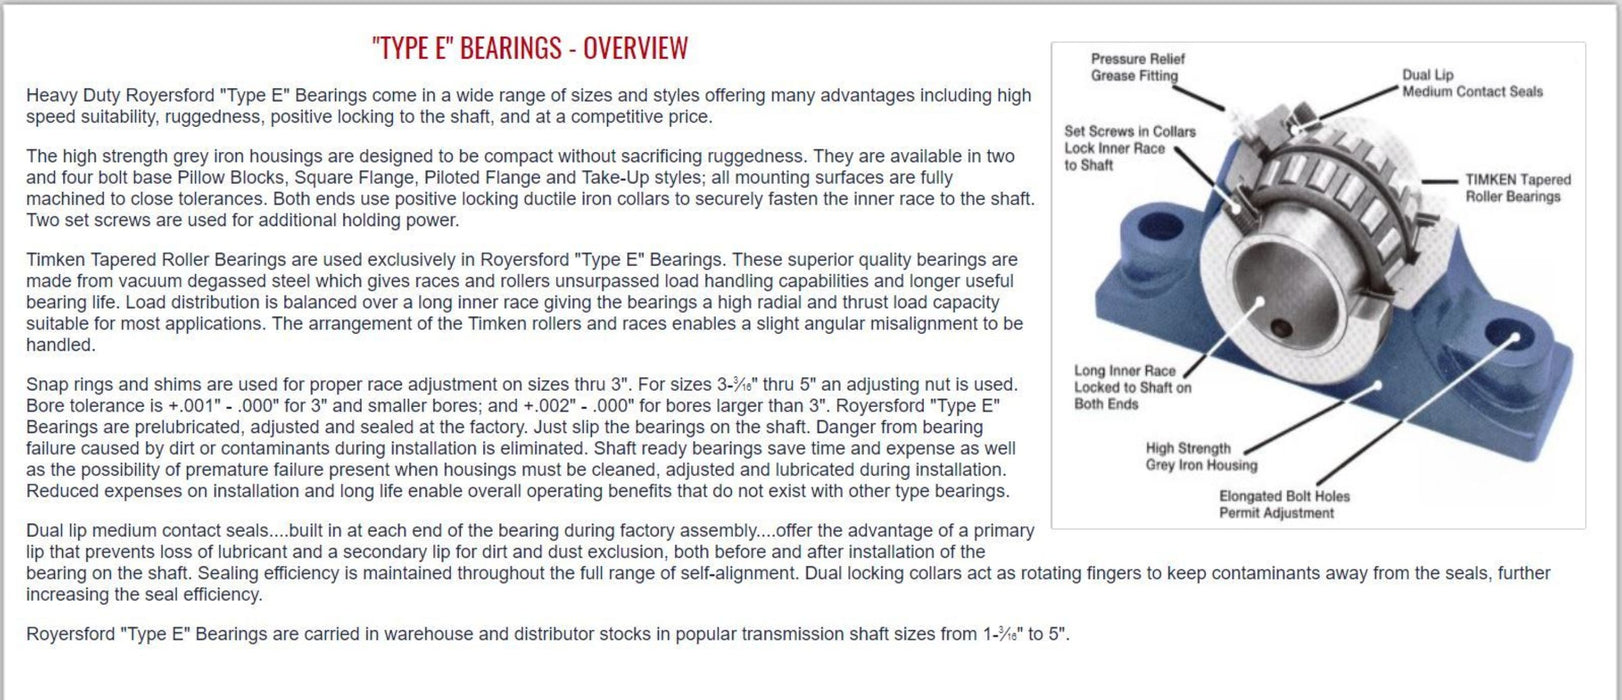 20-05-0212, ROYERSFORD TYPE E 4 Bolt Square Flange Bearing, 2-3/4 with Timken Tapered Roller Bearings